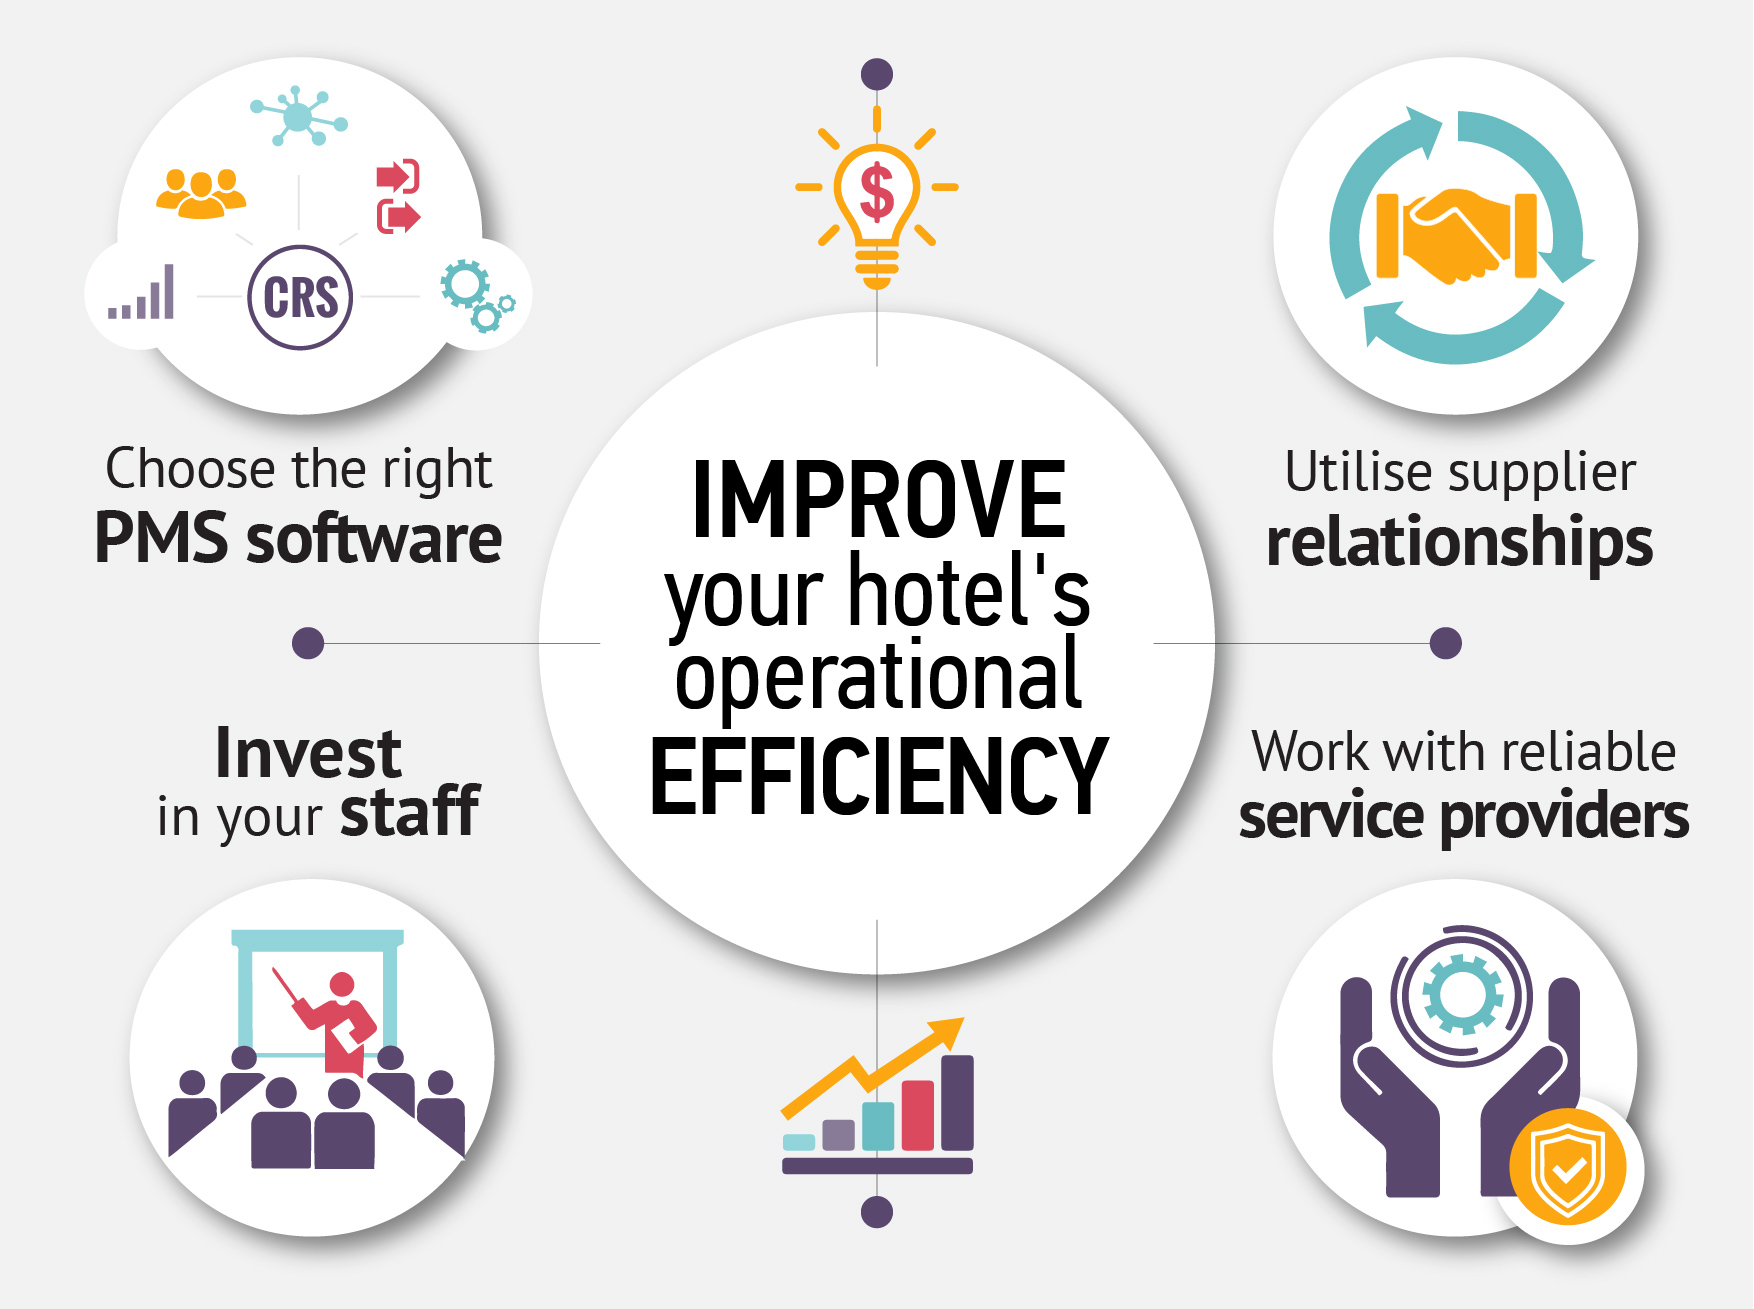 HotelREZ shares its five tips on how to improve operational efficiency for your hotel